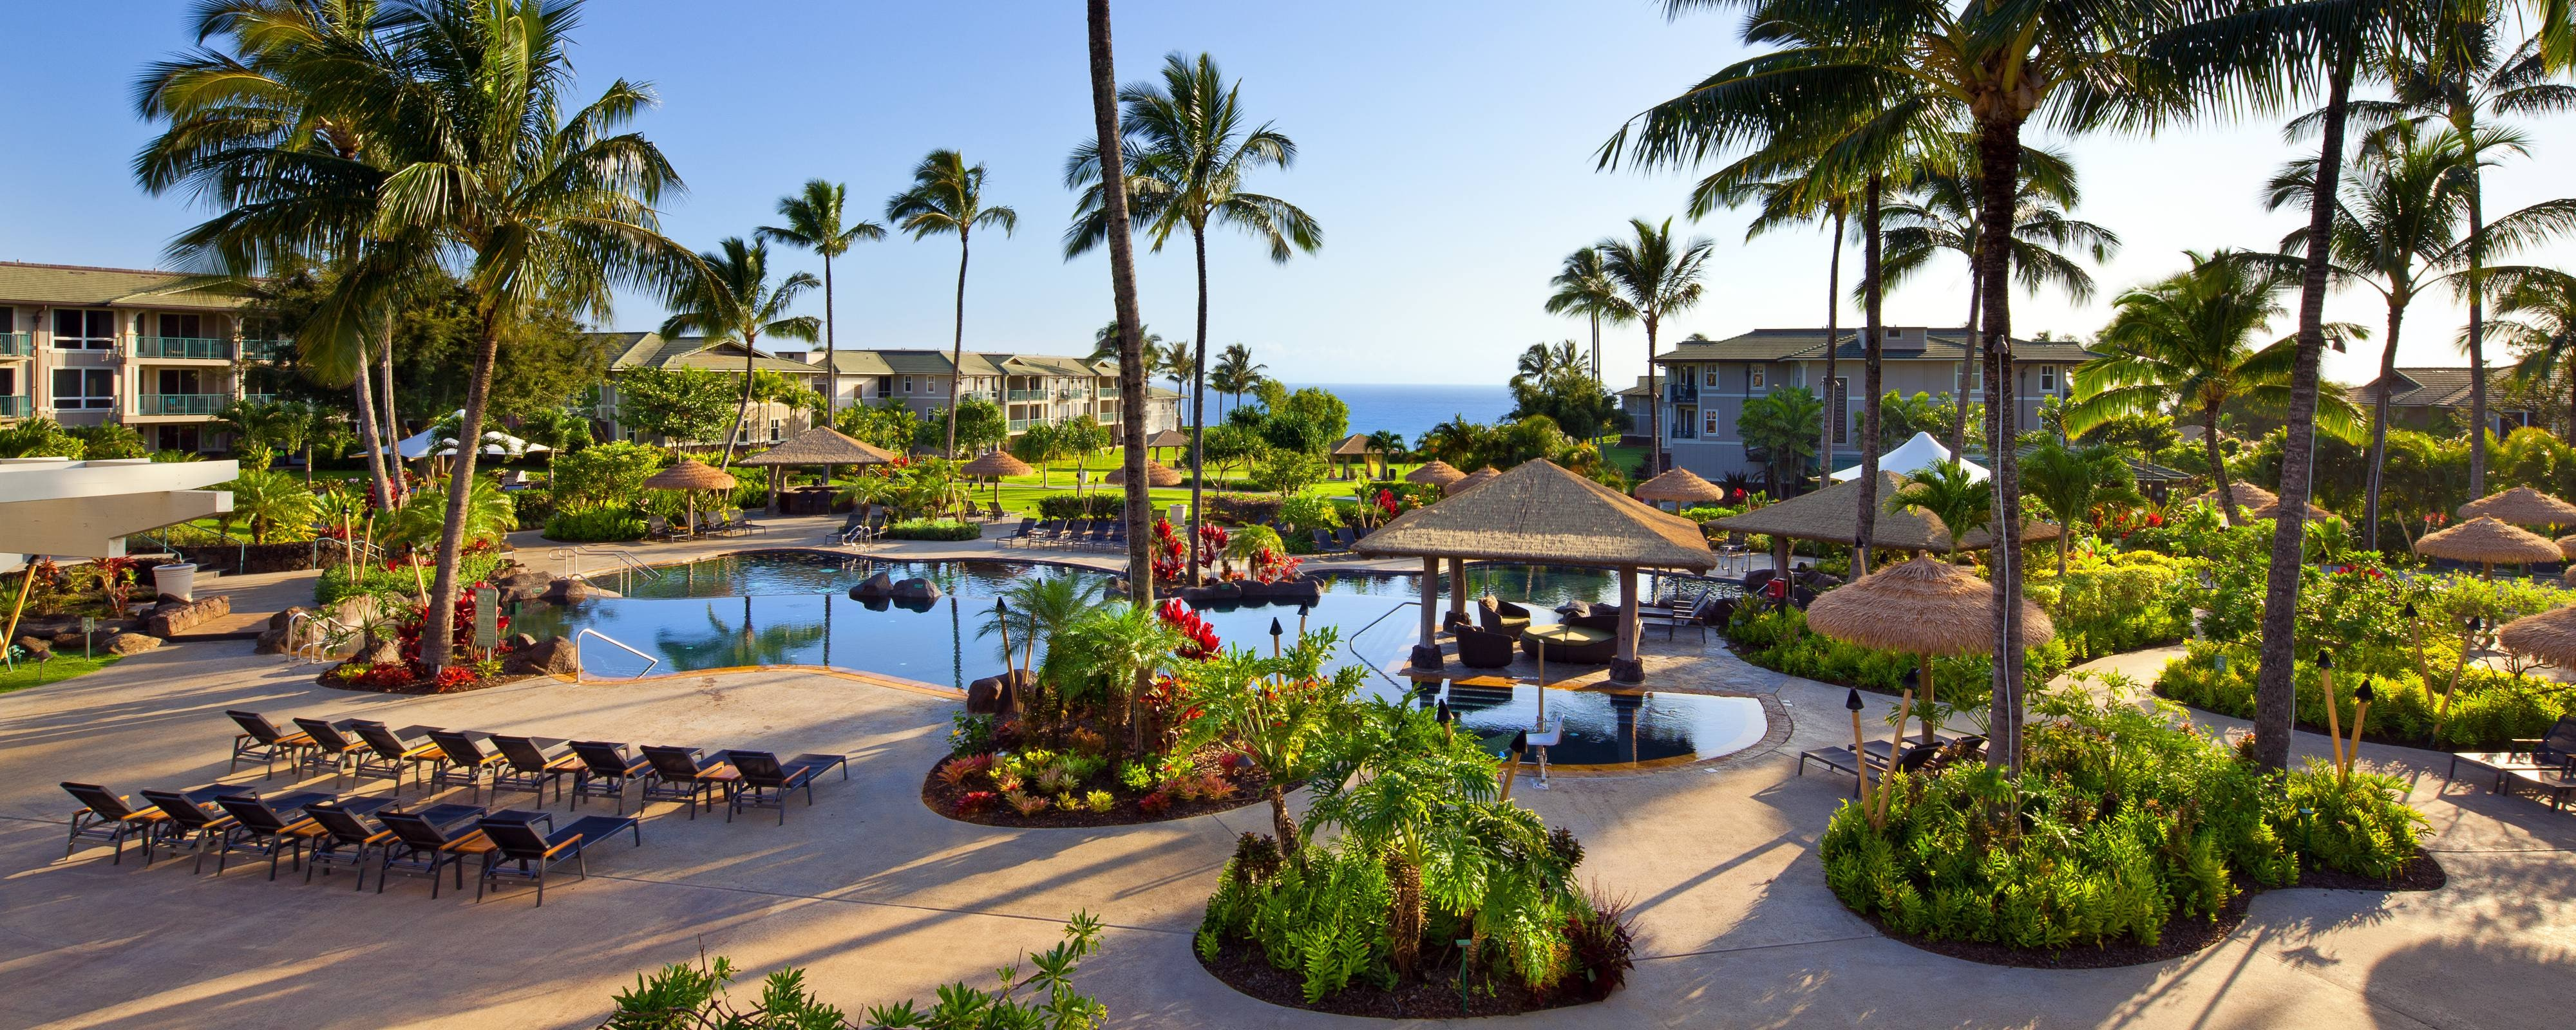 Wellness Hotel in Princeville | The Westin Princeville Ocean